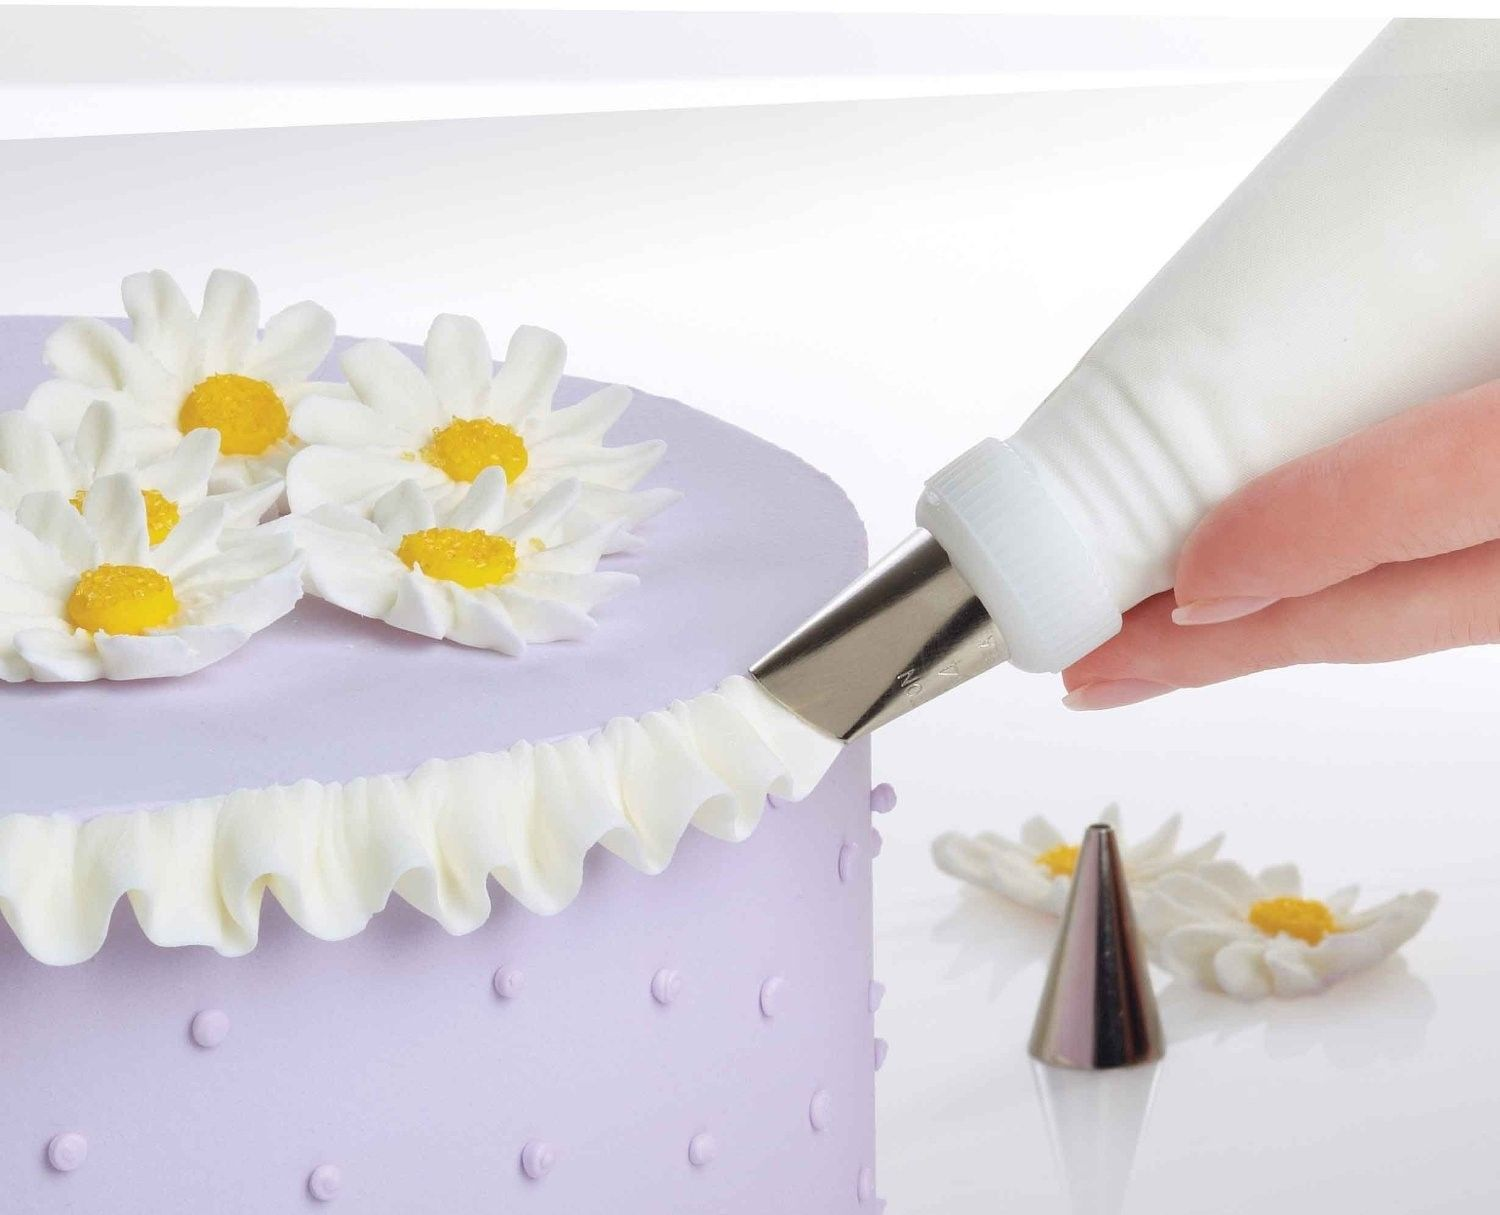 Cake Decorating Nails : Wilton Professional Cake Decorating Set Kit Tips Case ...